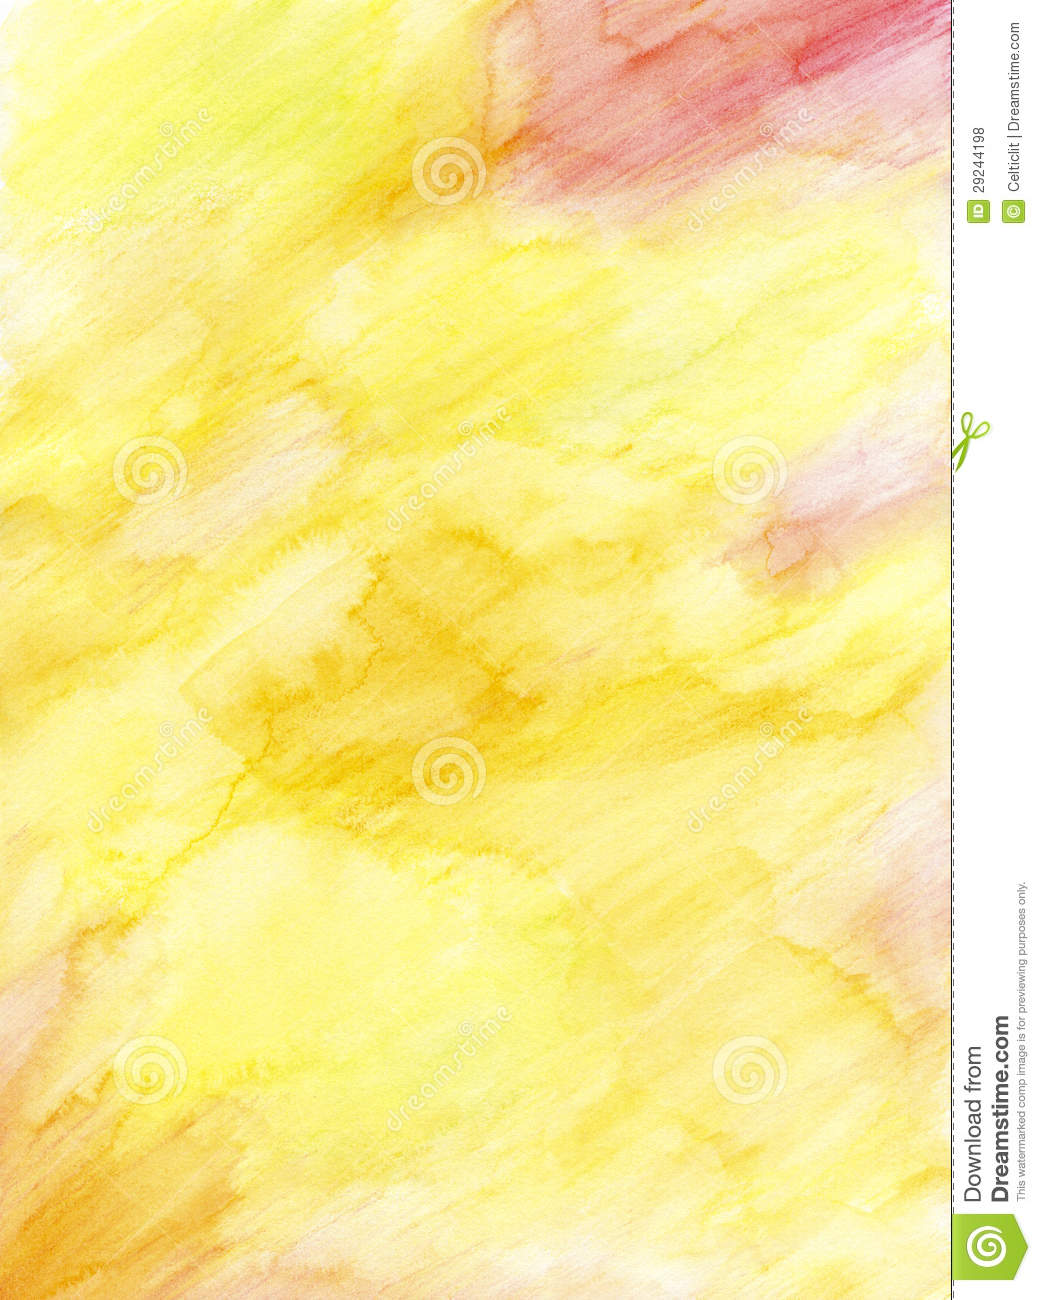 Watercolor Pencil Hand Painted Background Royalty Free Stock Photos